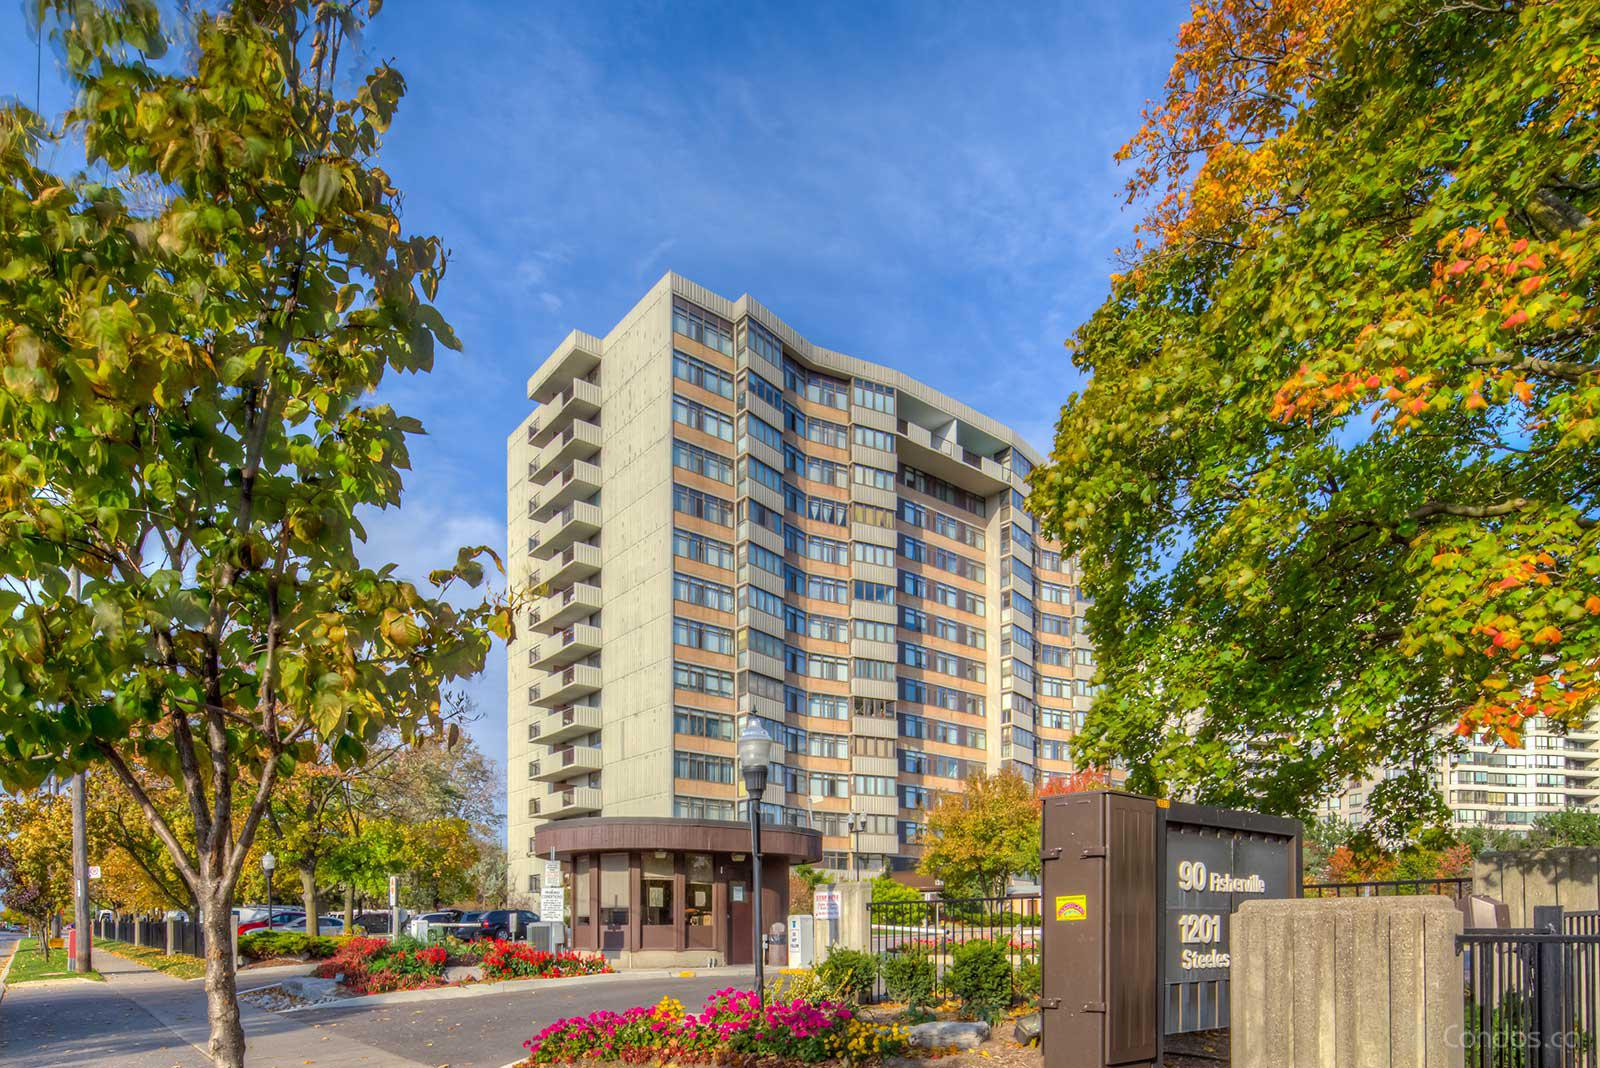 The Courtlands at 1201 Steeles Ave W, Toronto 0